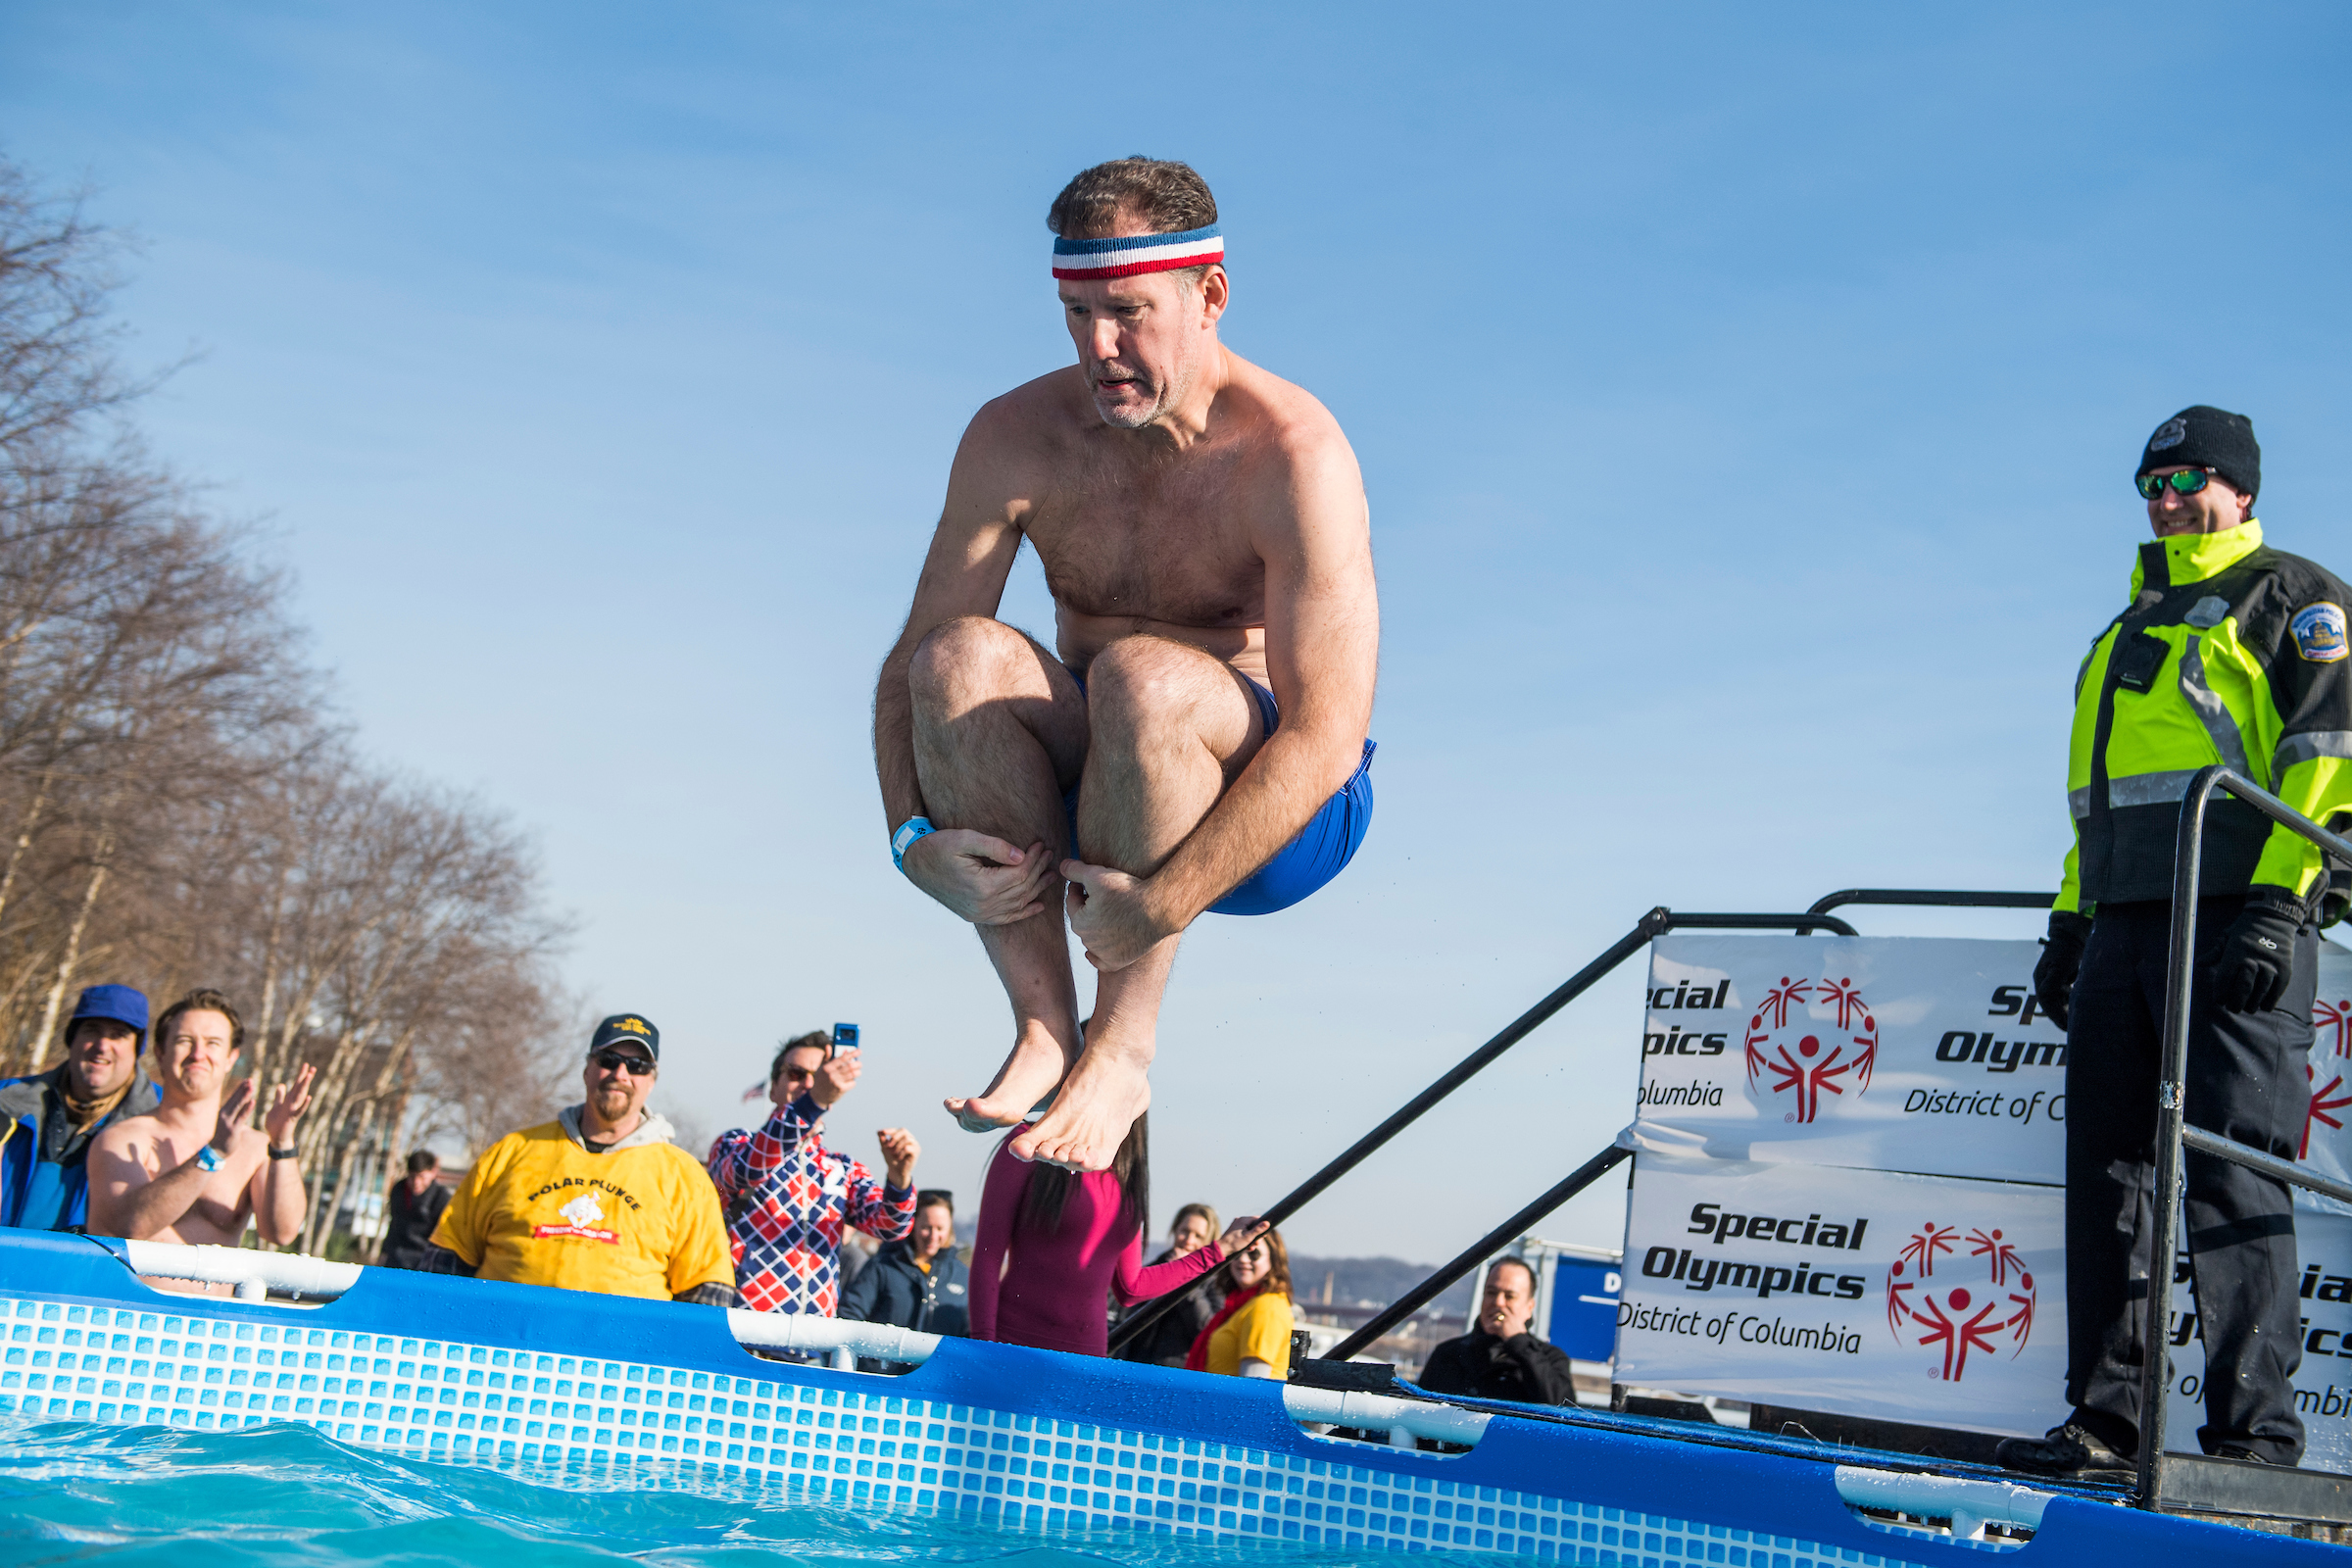 UNITED STATES - FEBRUARY 02: Political strategist Doug Heye participates in the Polar Plunge fundraiser to benefit the Special Olympics DC, at the Yards Park on Saturday, February 2, 2019. Heye's team, Cobra Kai, raised over $8000. (Photo By Tom Williams/CQ Roll Call)